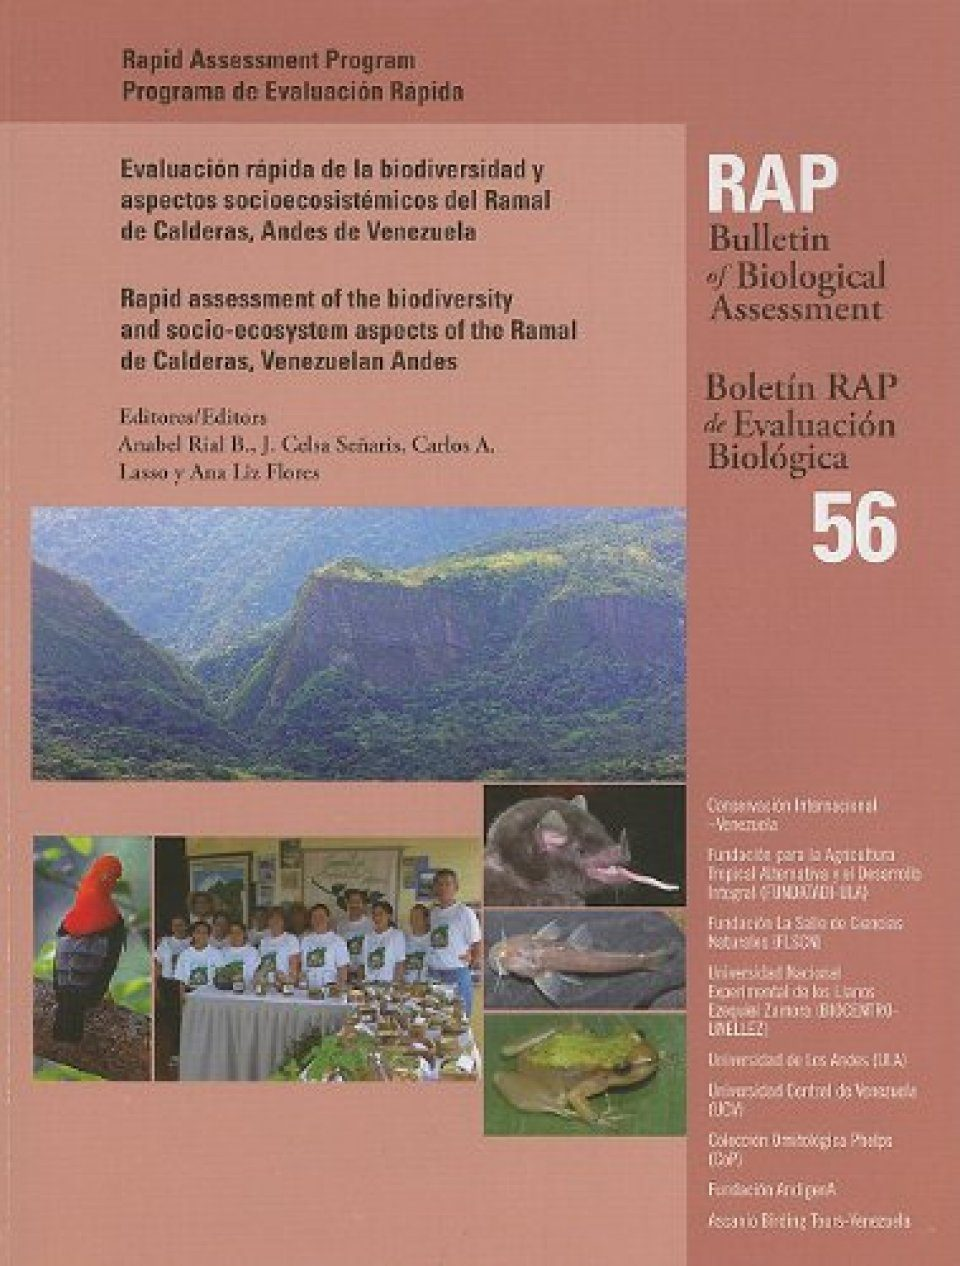 A Rapid Assessment of the Biodiversity and Socio-ecosystem Aspects of the Ramal De Calderas, Venezuelan Andes